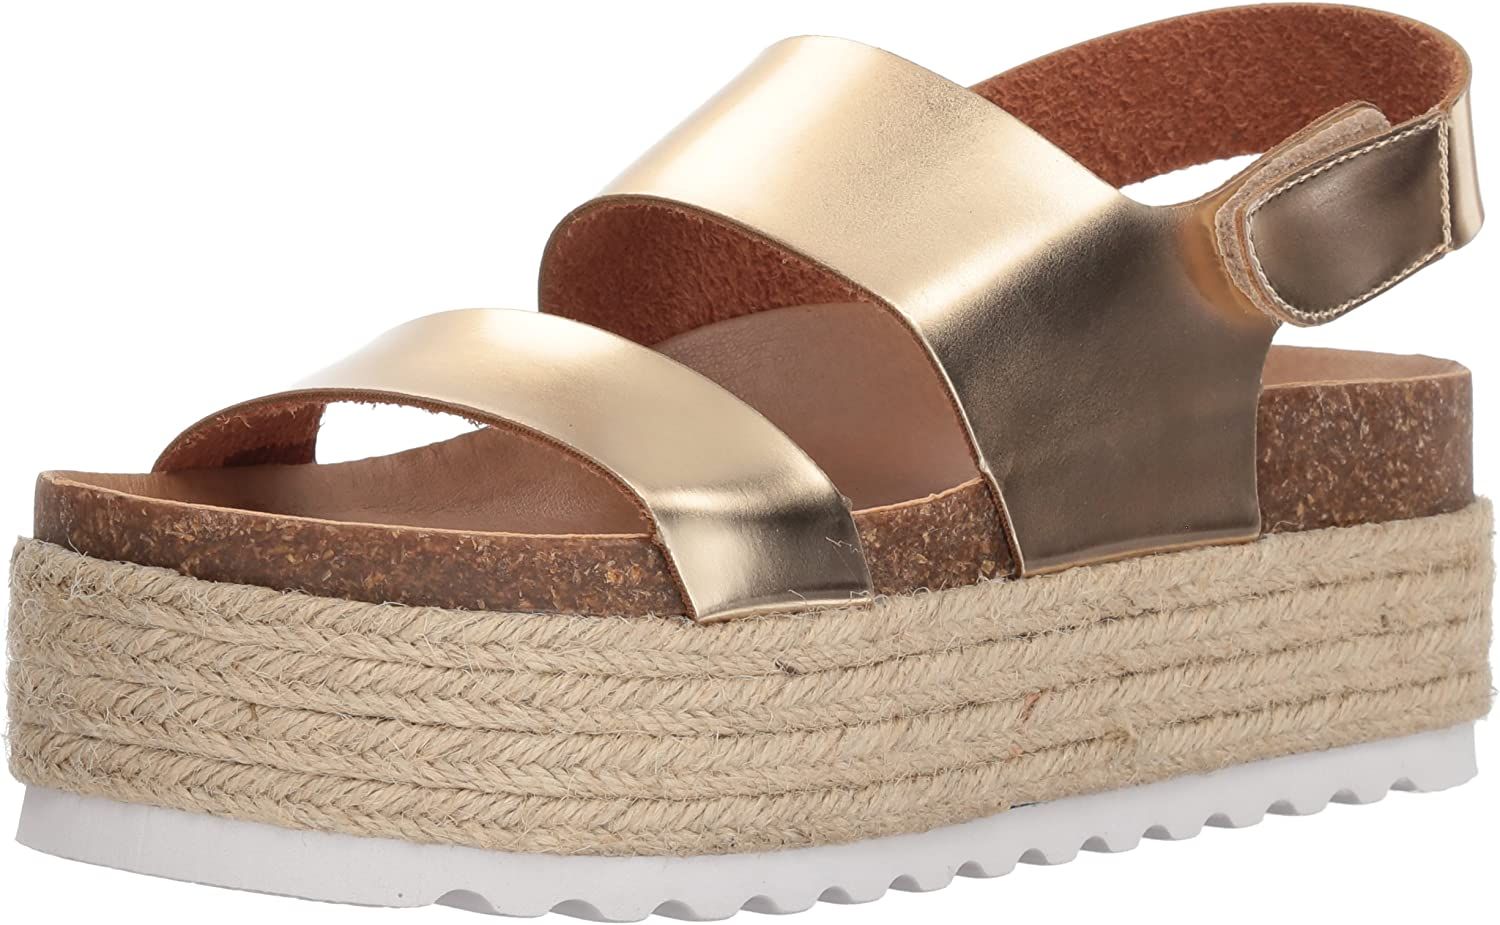 Dirty Laundry Women's Peyton Platform Sandal